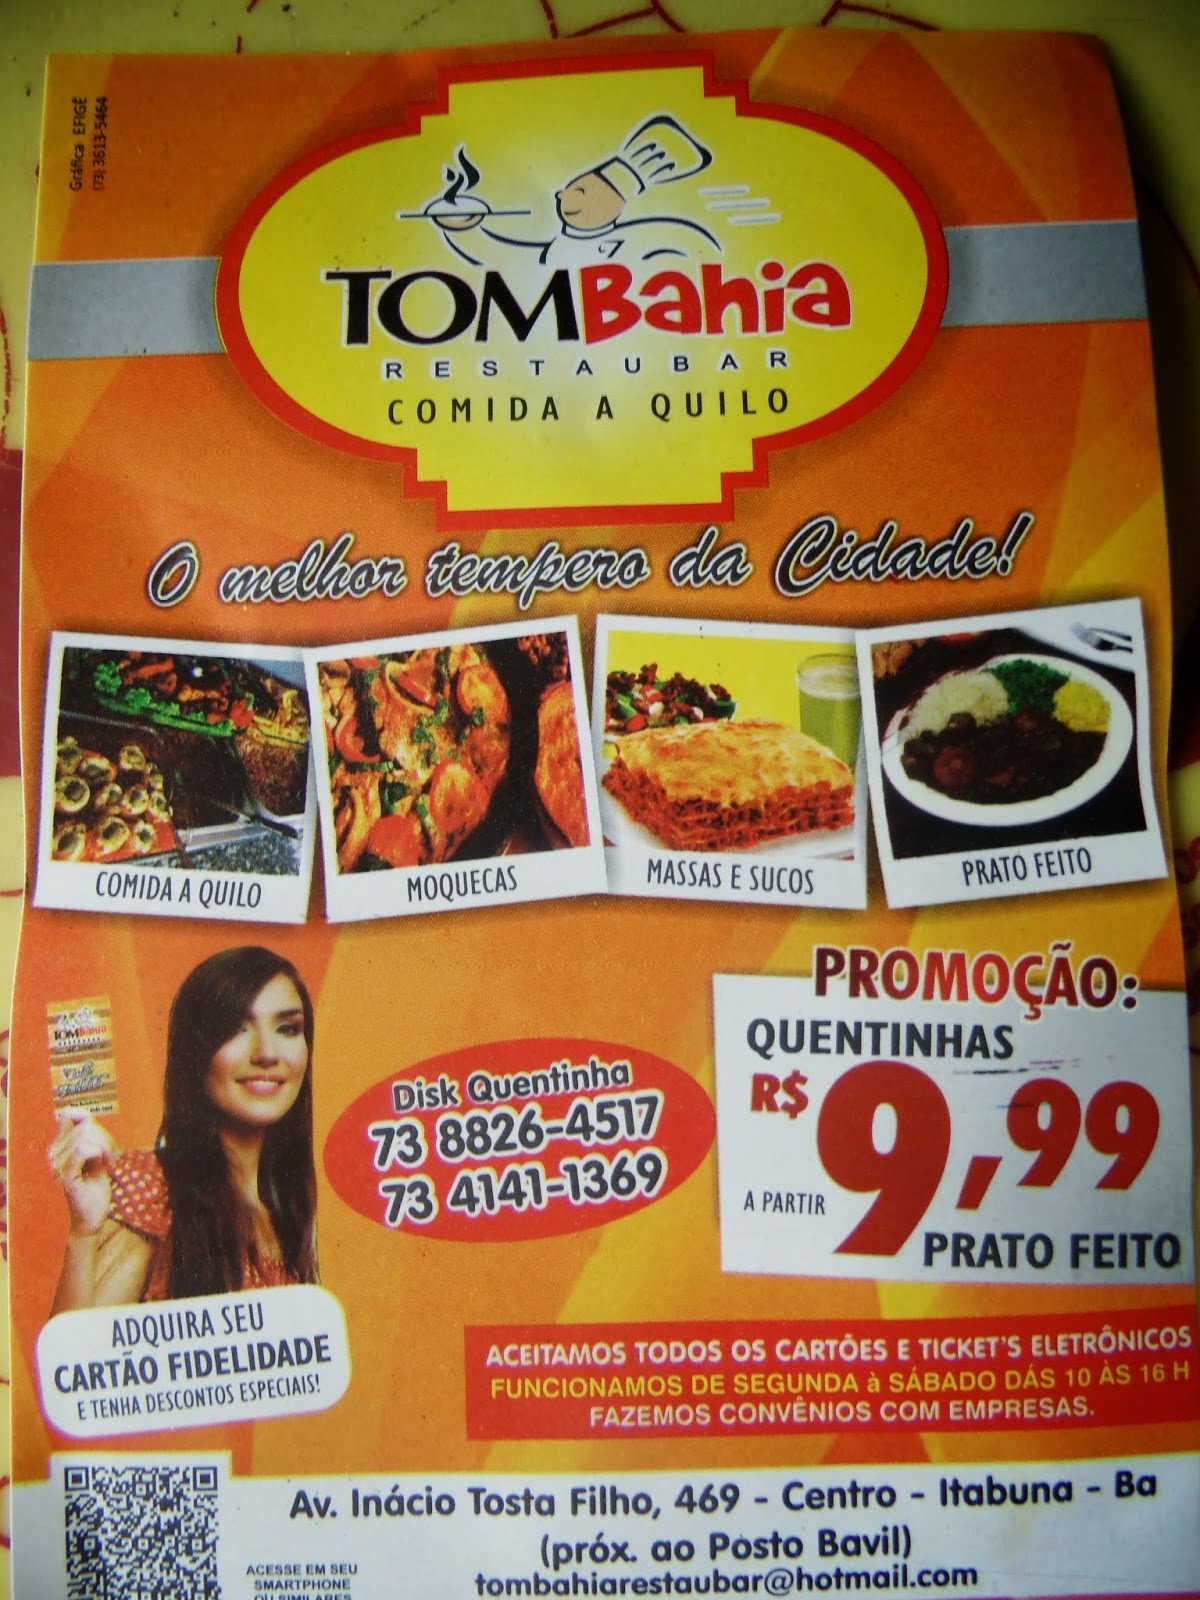 TOMBAHIA RESTAUBAR